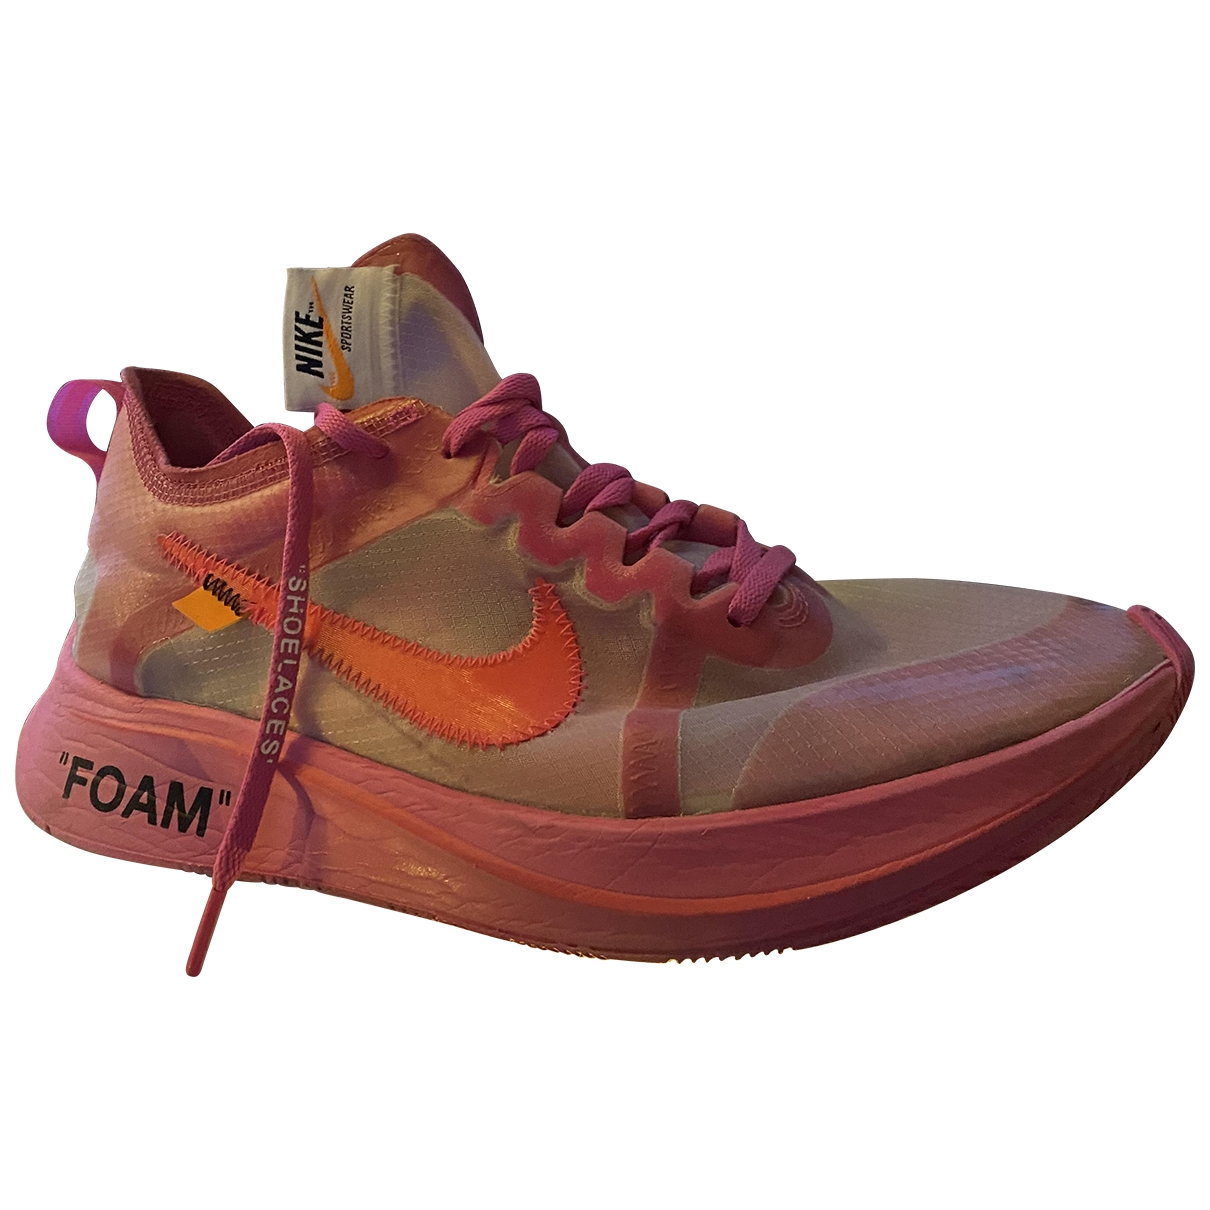 Nike X Off-white - Baskets Zoom Fly pour homme en toile - rose